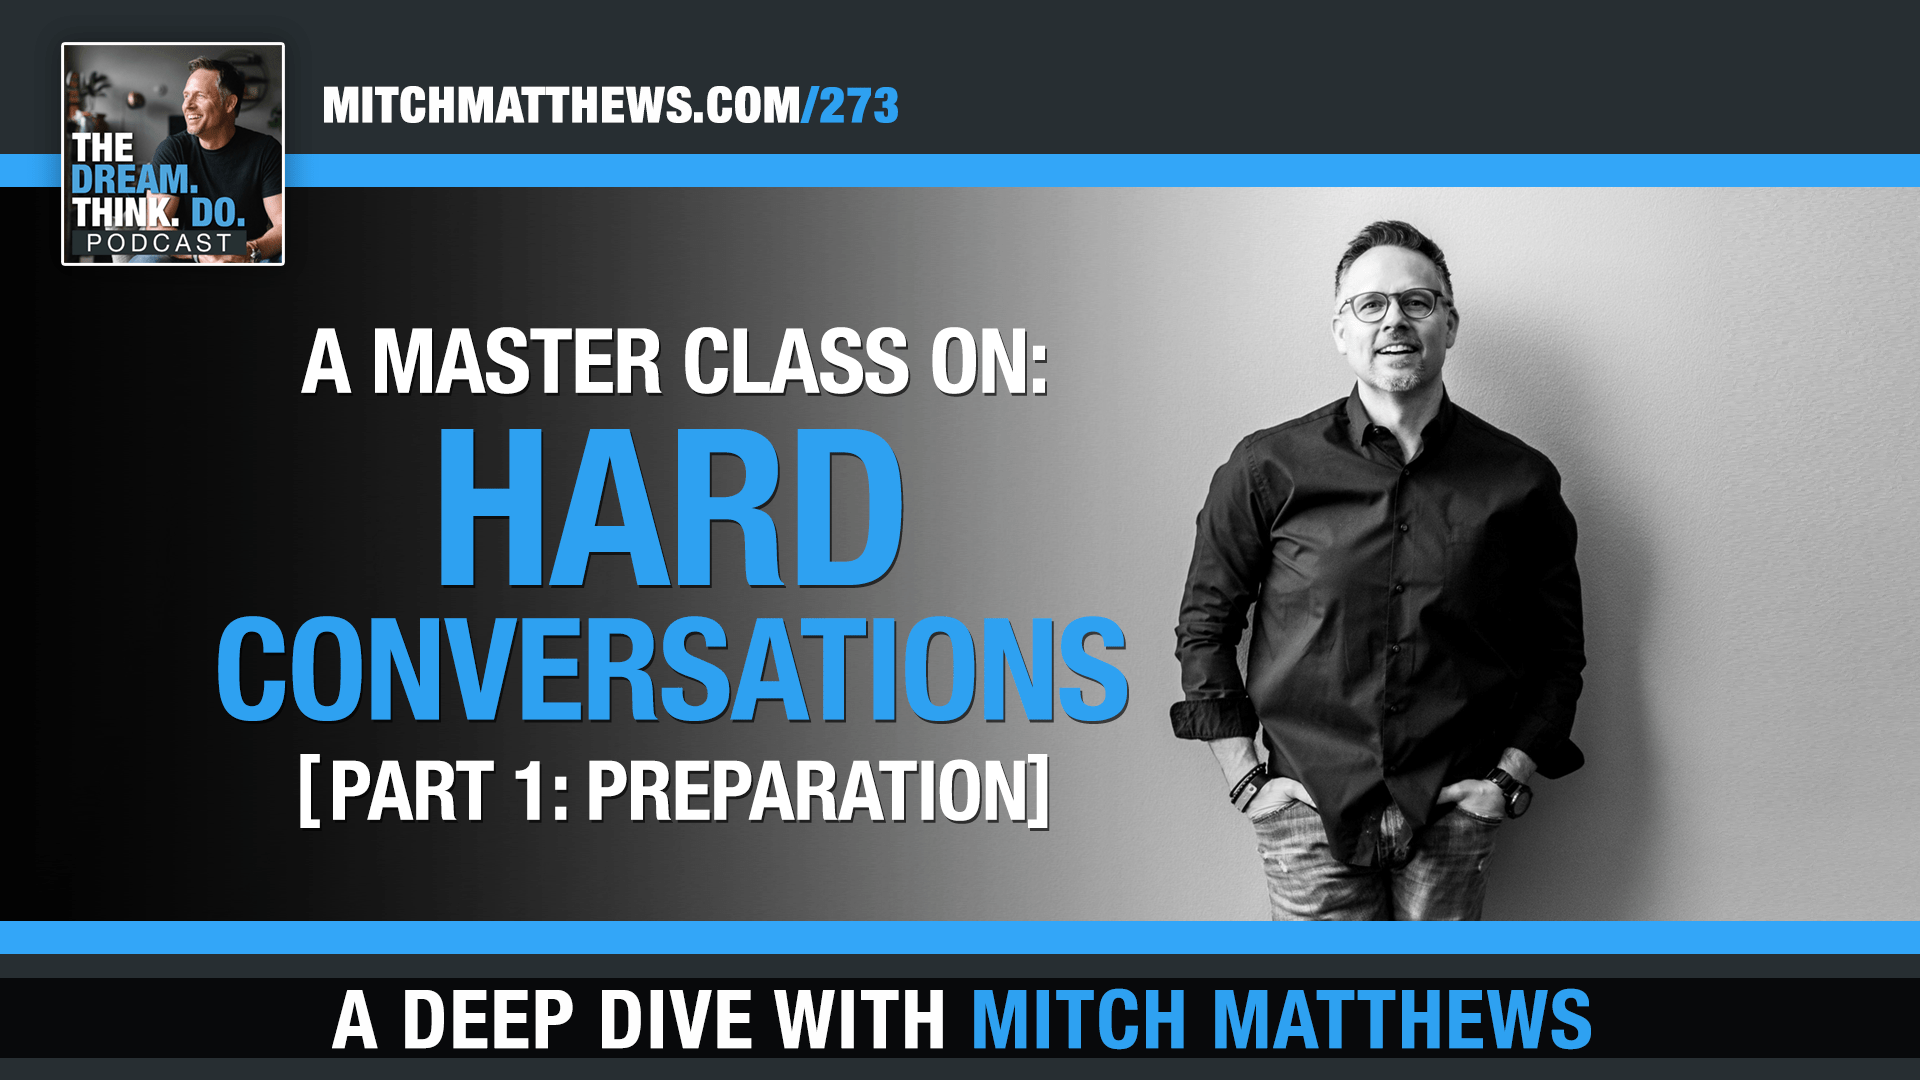 A Masterclass on Hard Conversations: Part 1 - Preparation